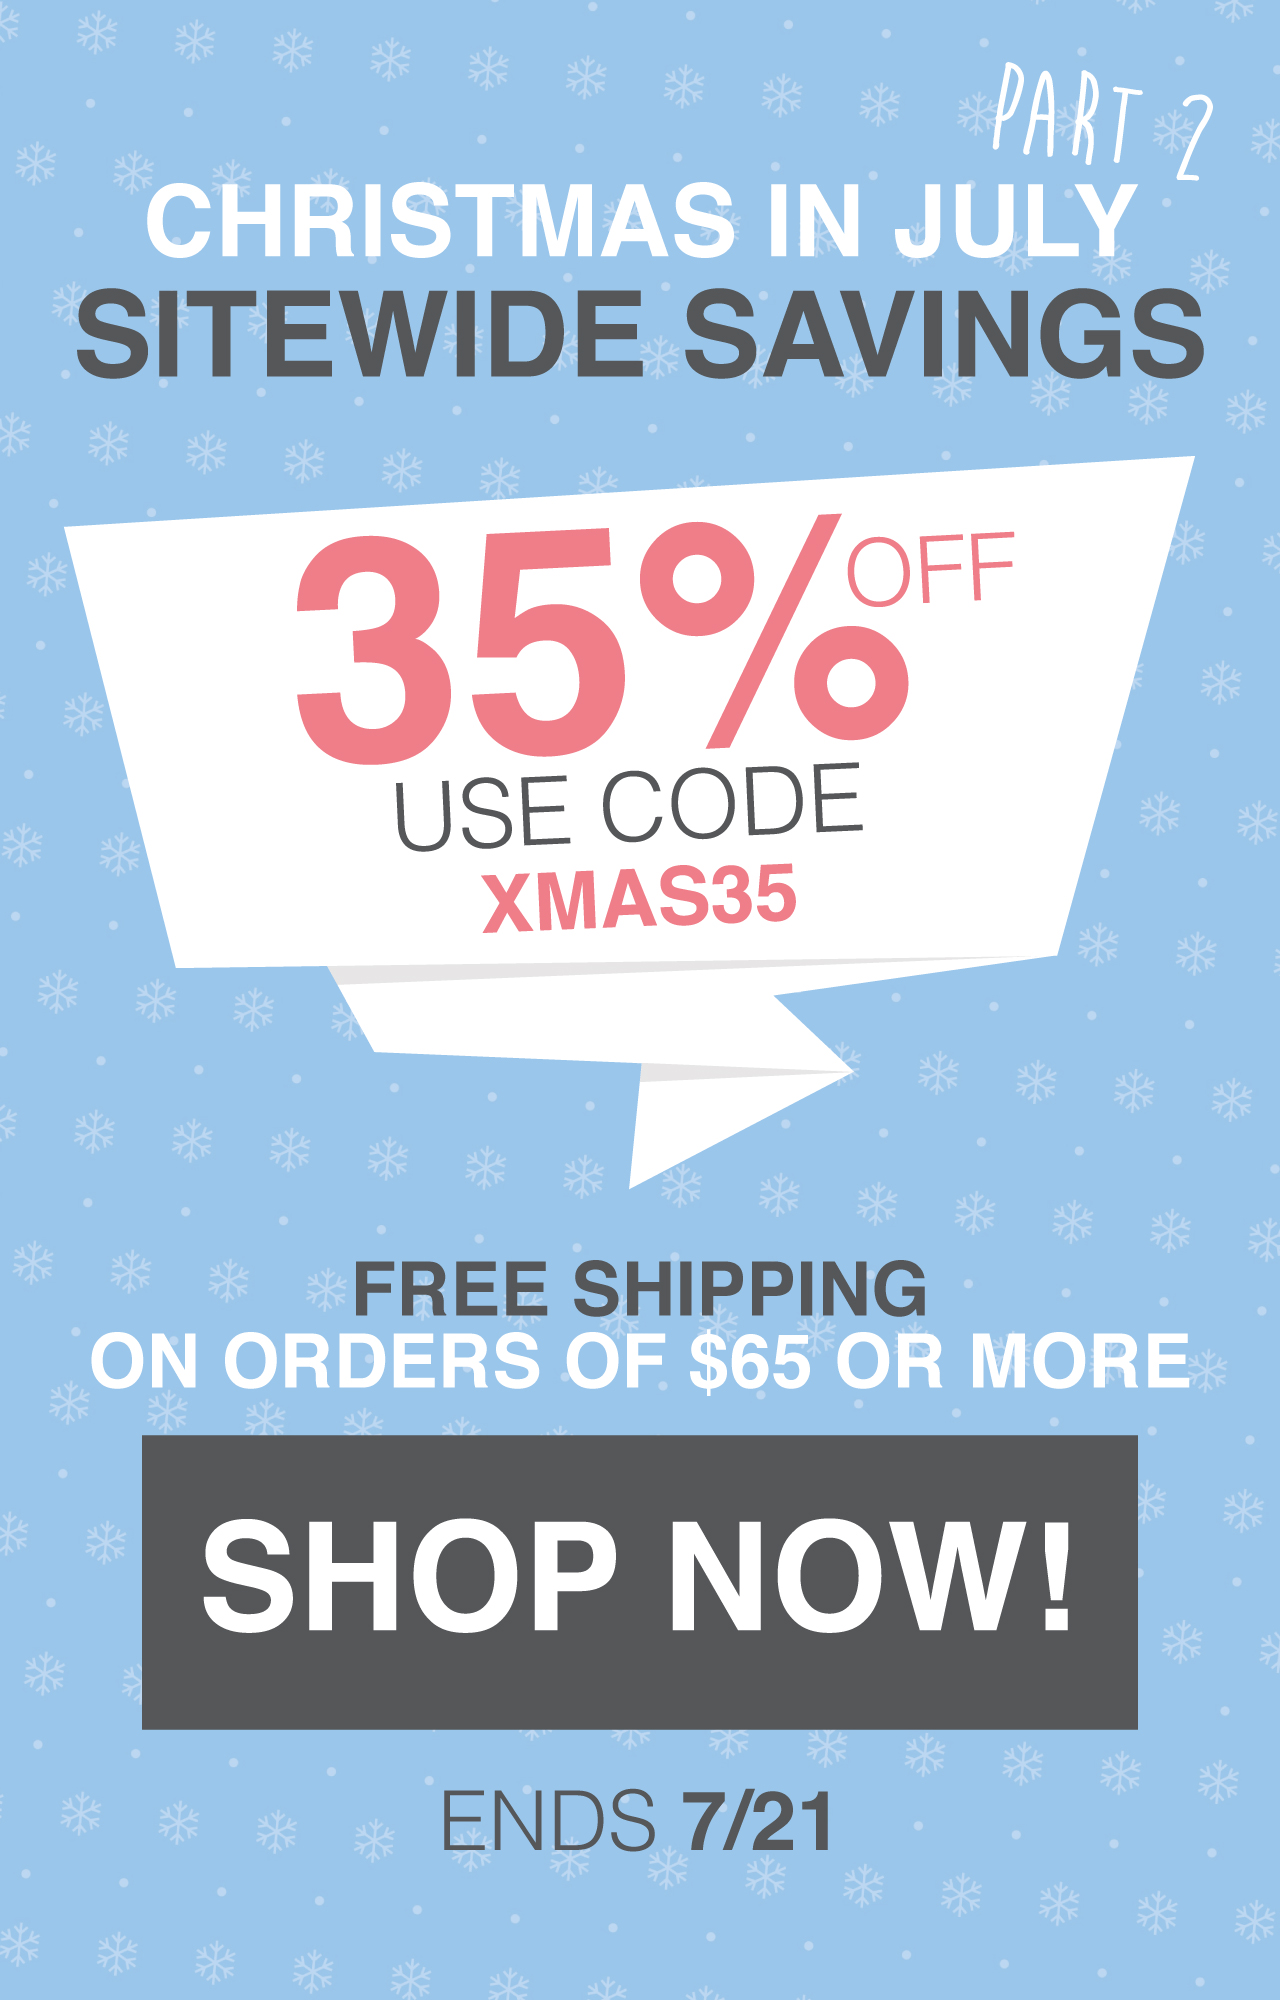 Up to 65% off!